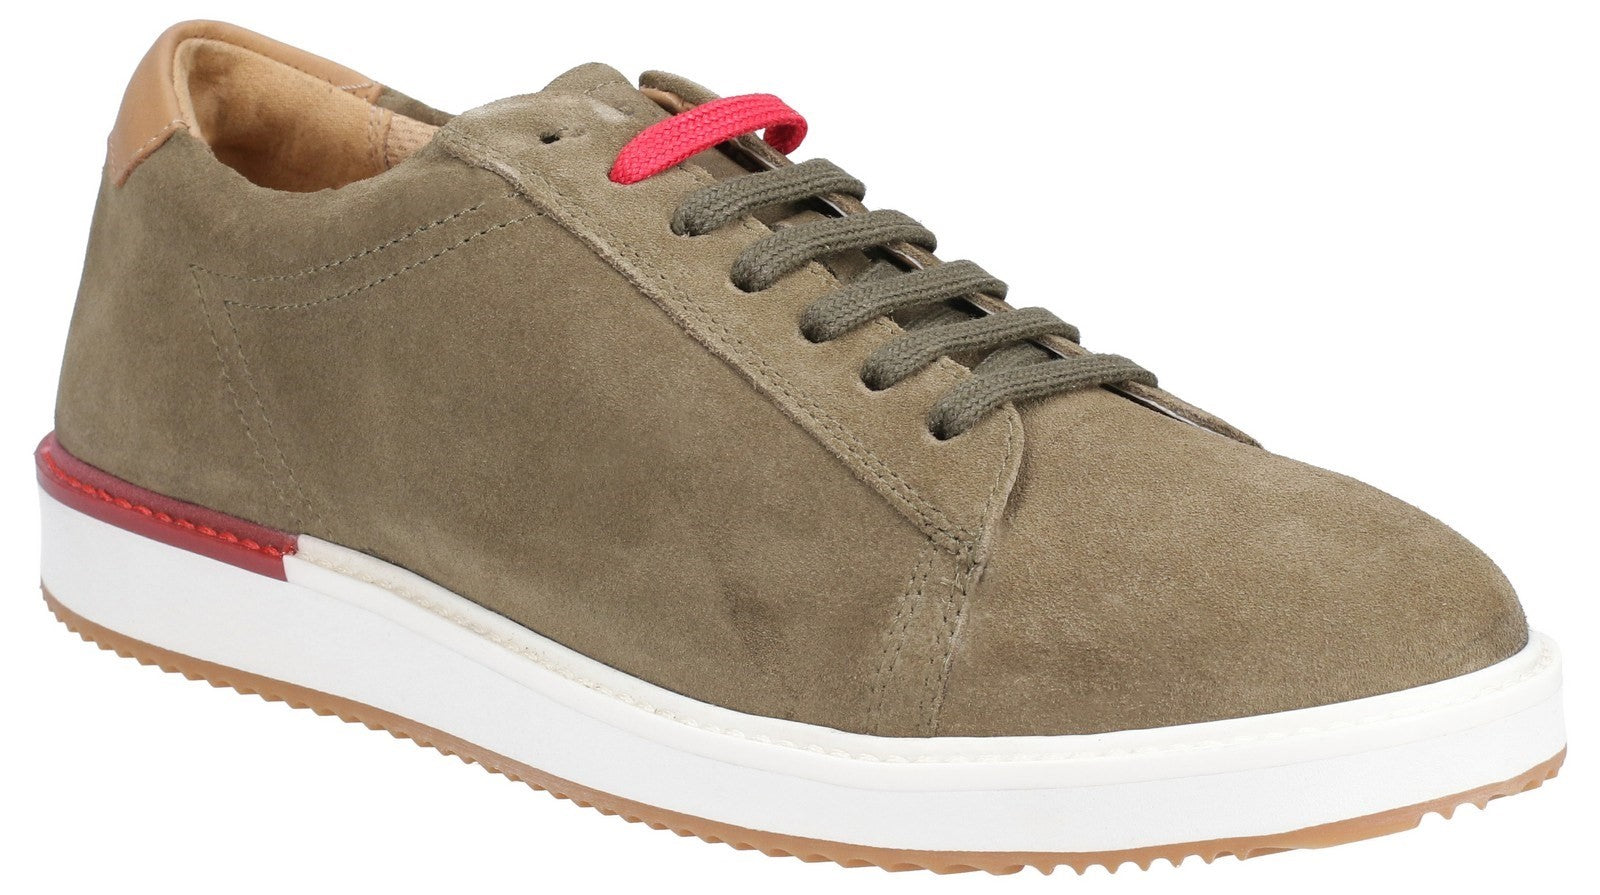 Hush Puppies Men's Heath BouncePLUS Lace Up Shoe Various Colours 29162